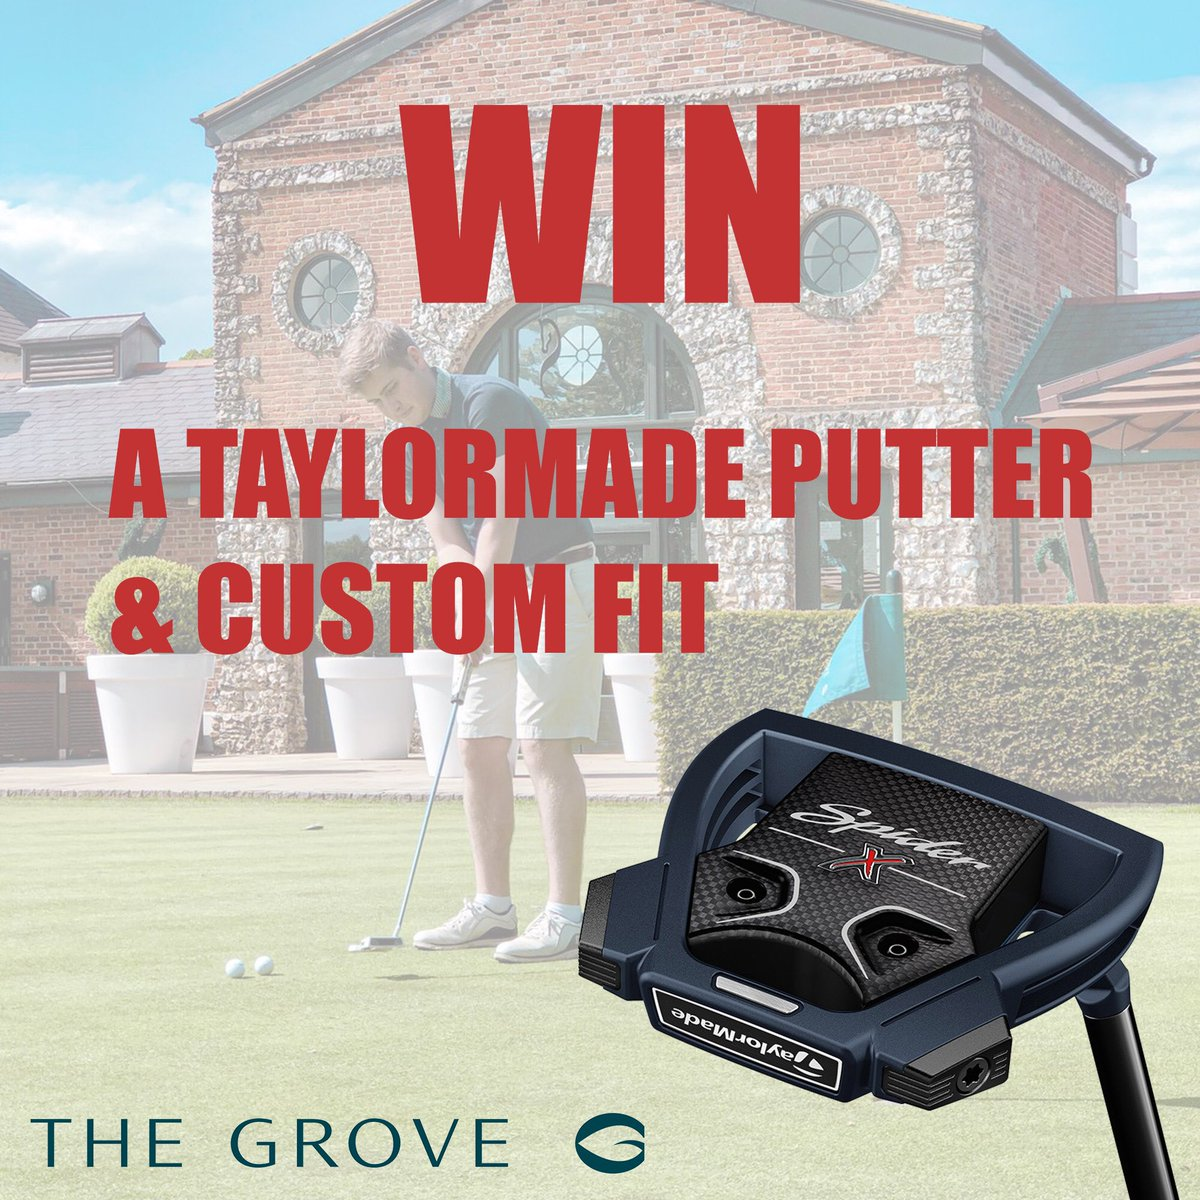 It's COMPETITION TIME at The Grove. ⠀⠀ Win a @TaylorMadeTour Putter (inc. Custom Fit with @MikeShrieve). To enter: ⠀⠀ 1️⃣ Follow @golfatthegrove 2️⃣ RT Post 3️⃣ Tag 3 Friends  🔜 Winner Announcer Monday 22 July ⠀⠀ Good luck! #golfatthegrove #taylormade #taylormadegolf #spiderx